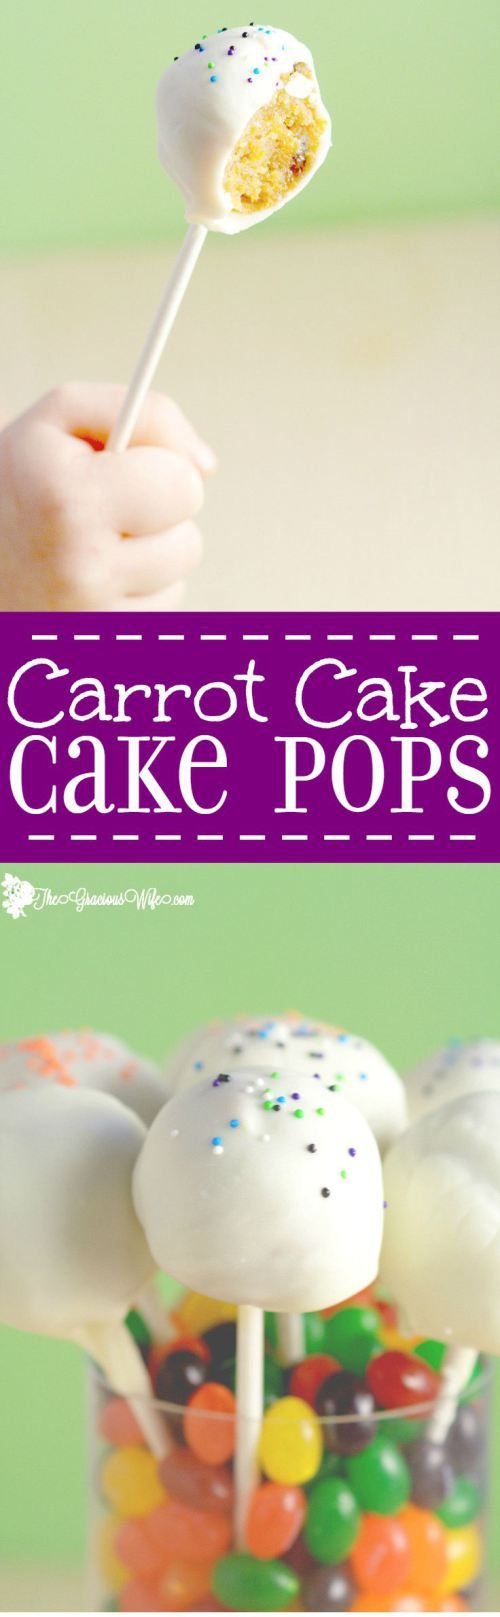 Carrot Cake Pops recipe - how to make cake pops with carrot cake, cream cheese frosting, and white chocolate. These cake pops are so moist and delicious!